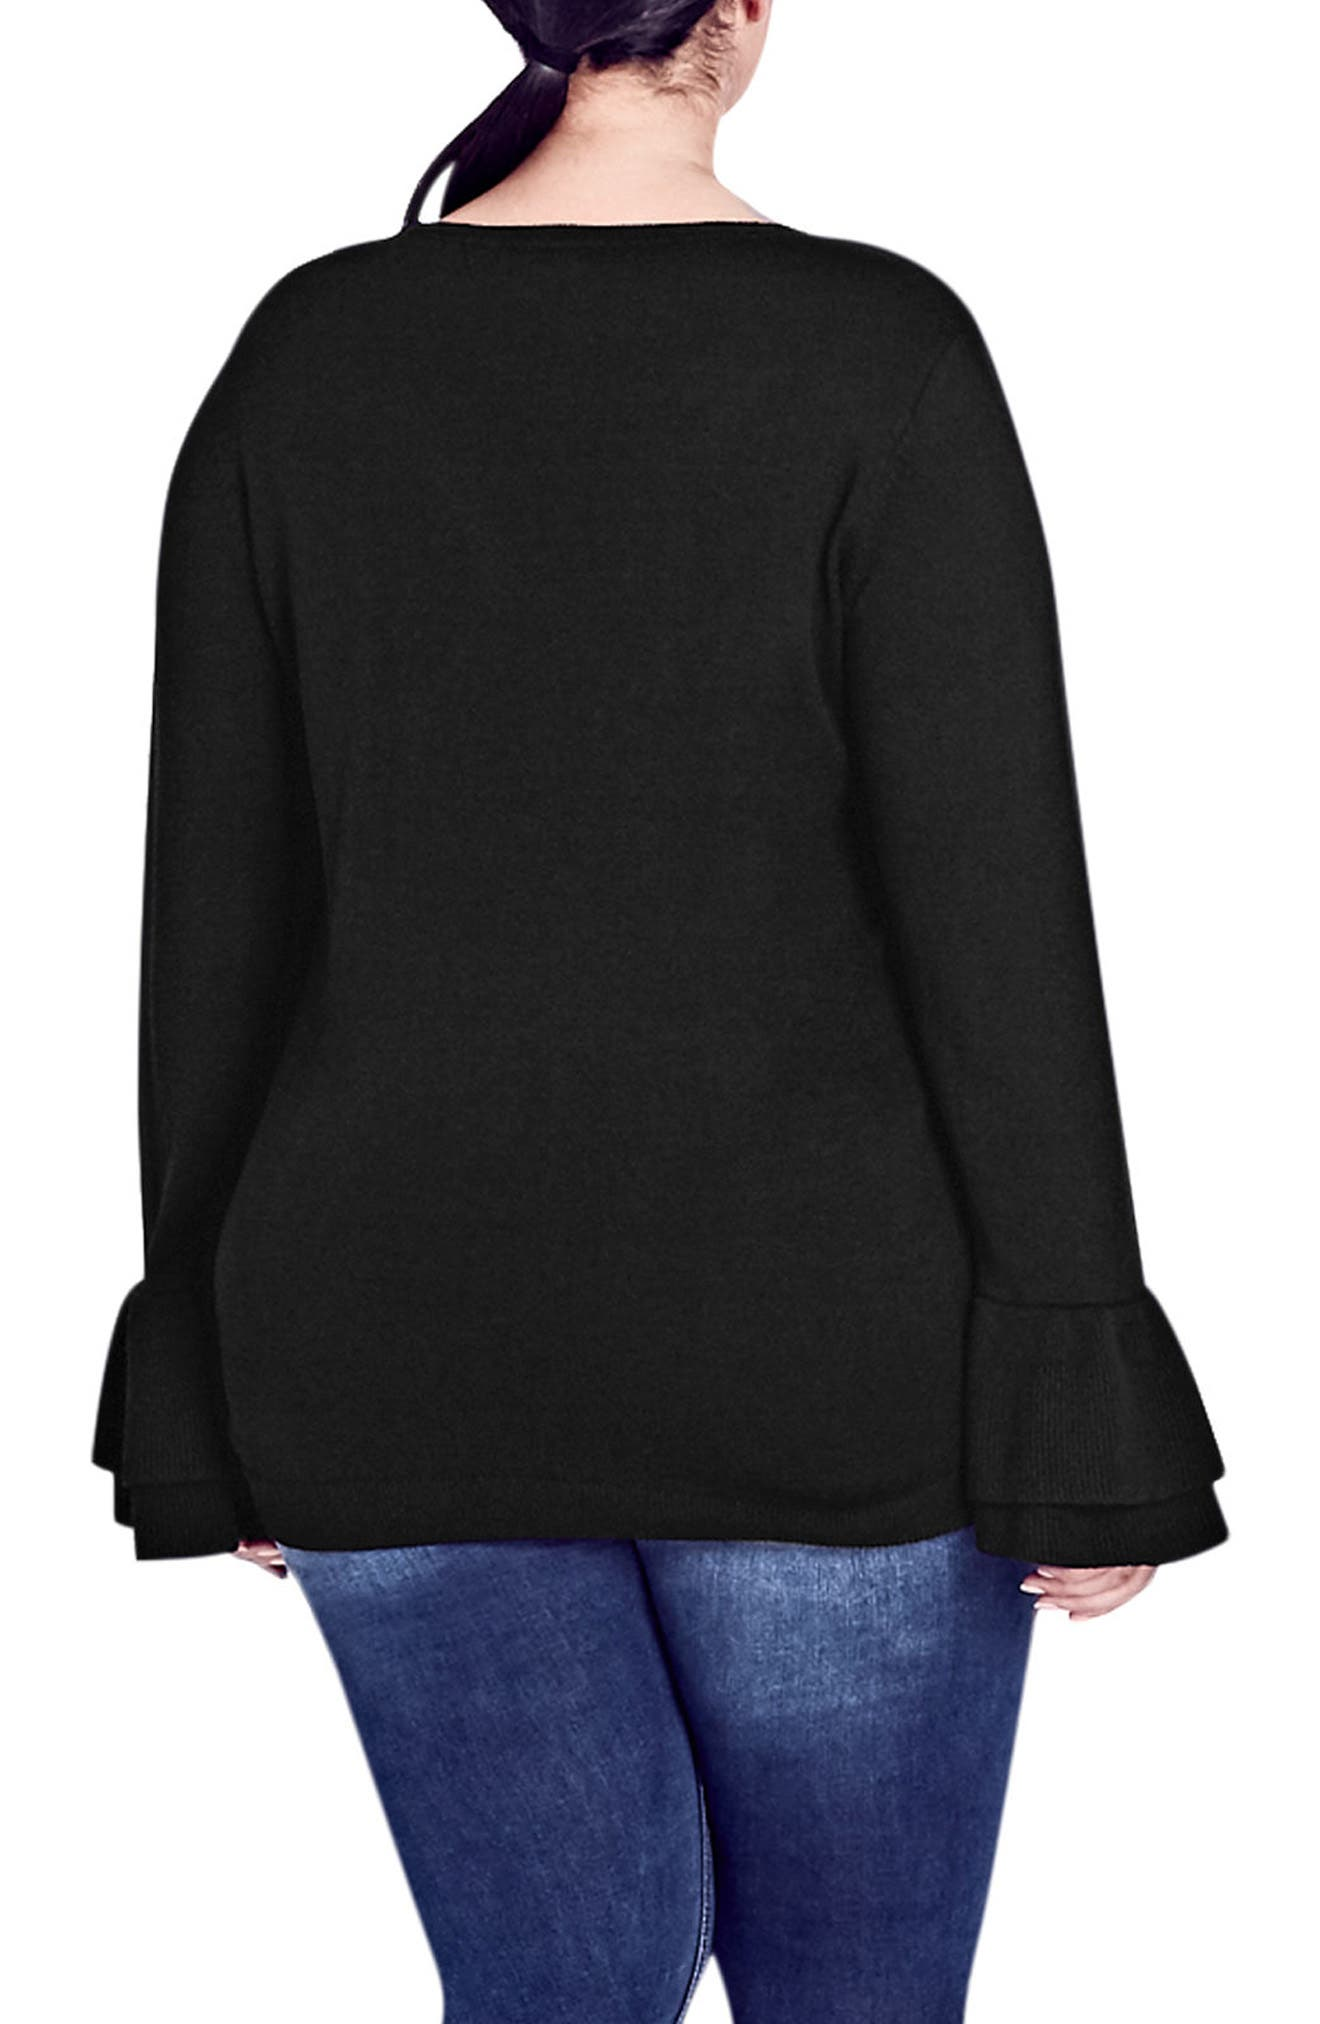 CITY CHIC,                             Double Frill Sleeve Sweater,                             Alternate thumbnail 2, color,                             001